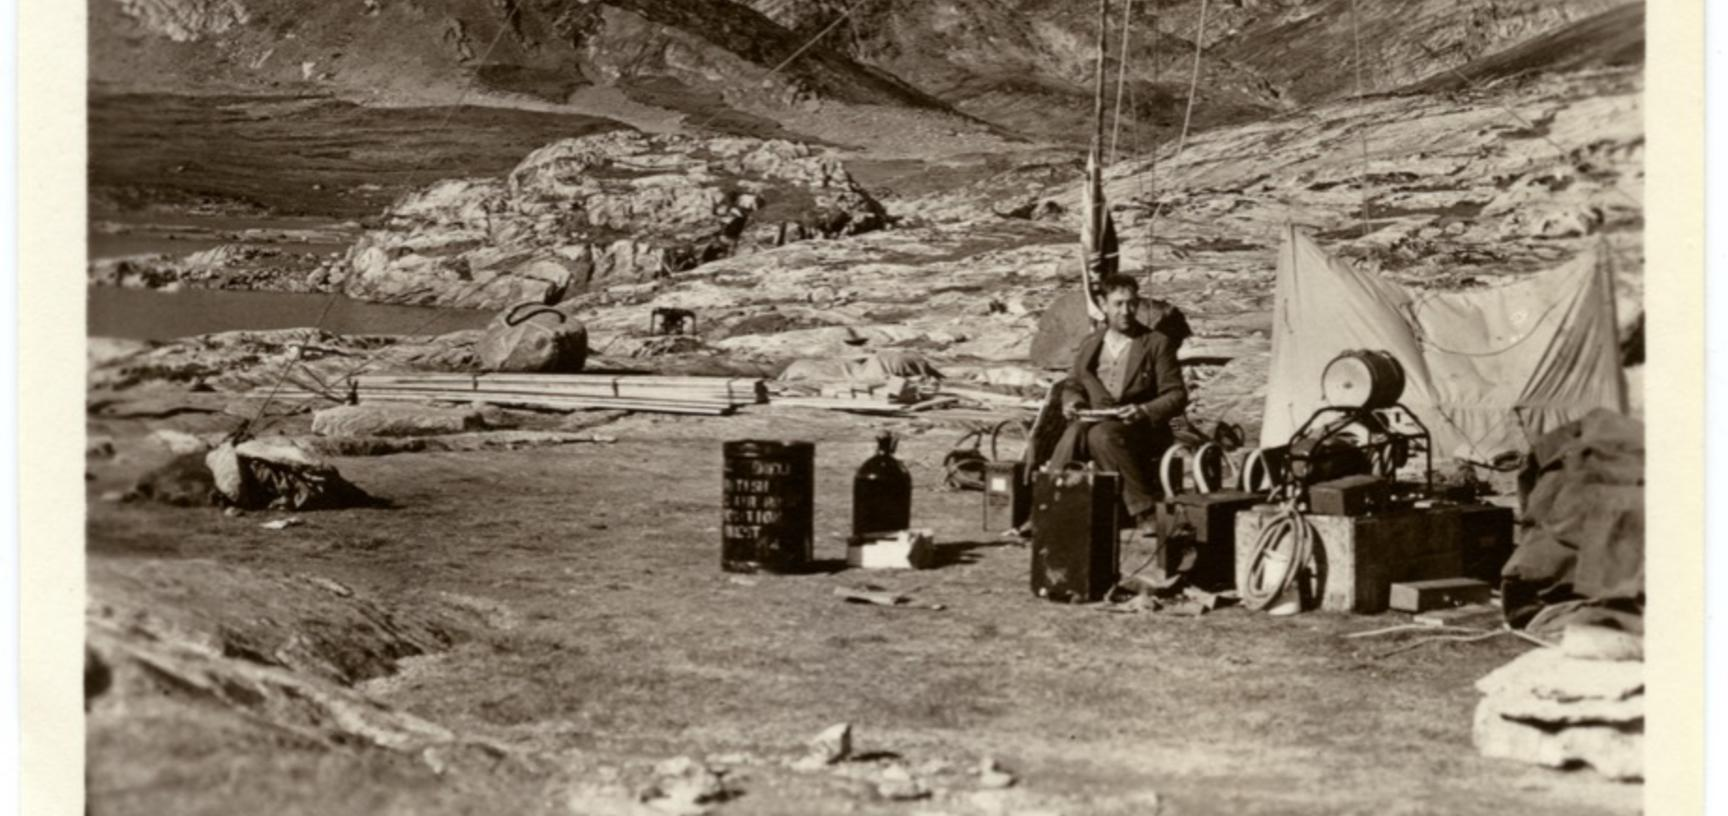 A member of the expedition party. Greenland. 1930–1931.